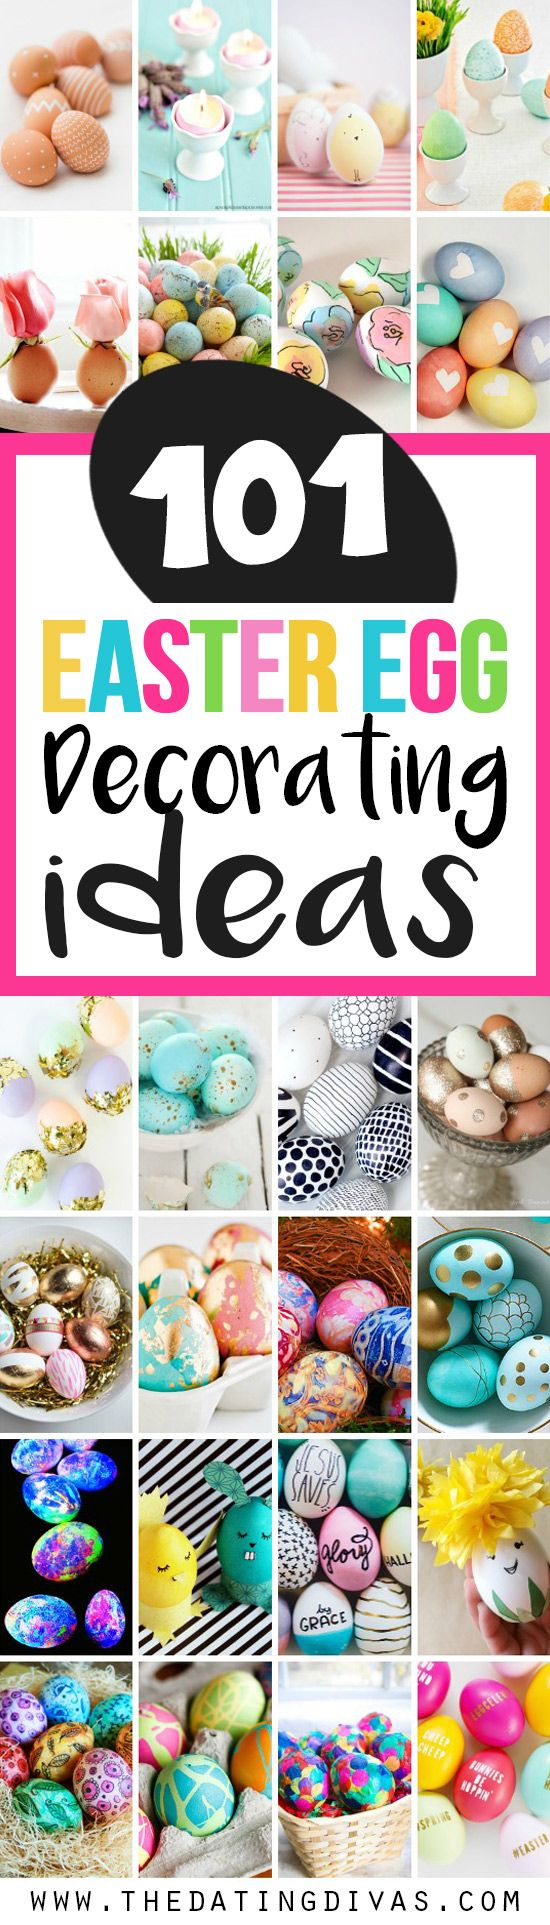 A huge collection of the BEST Easter egg decorating ideas! Includes fun ideas for kids AND some seriously gorgeous ideas for adults! www.TheDatingDivas.com